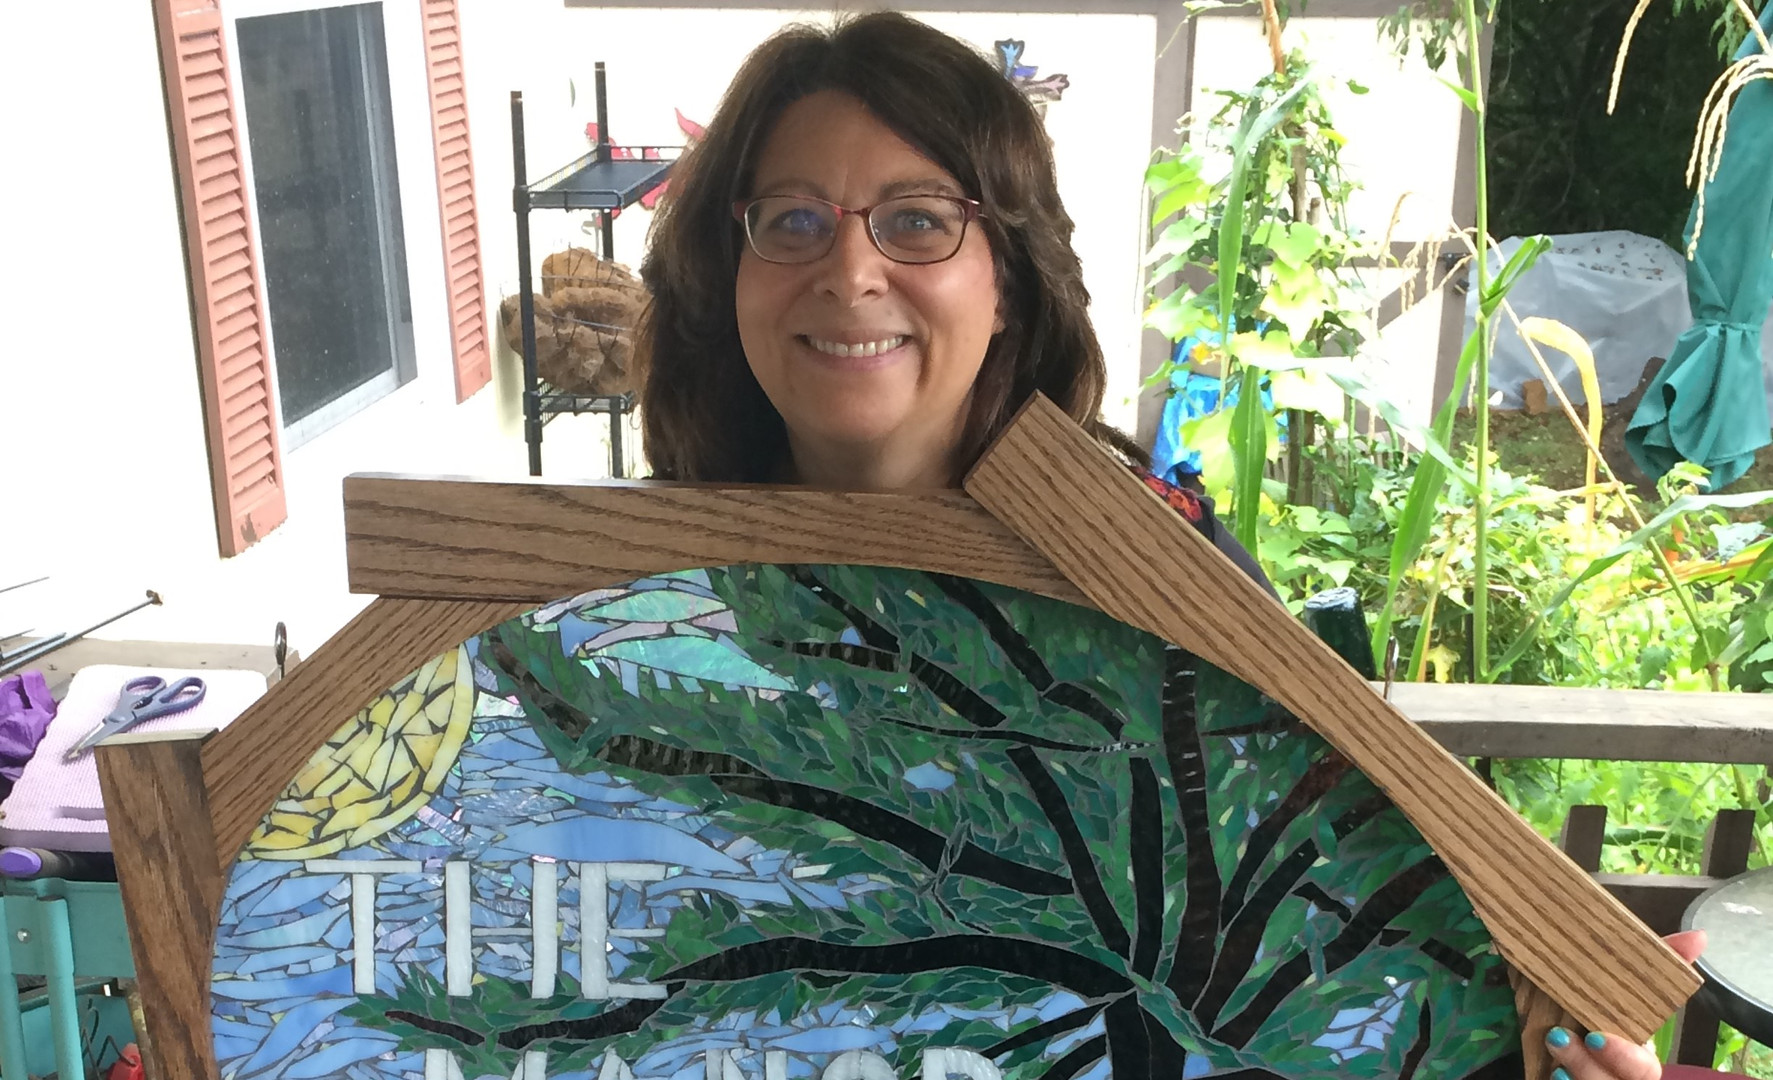 Debbie with finished stained glass mosaic